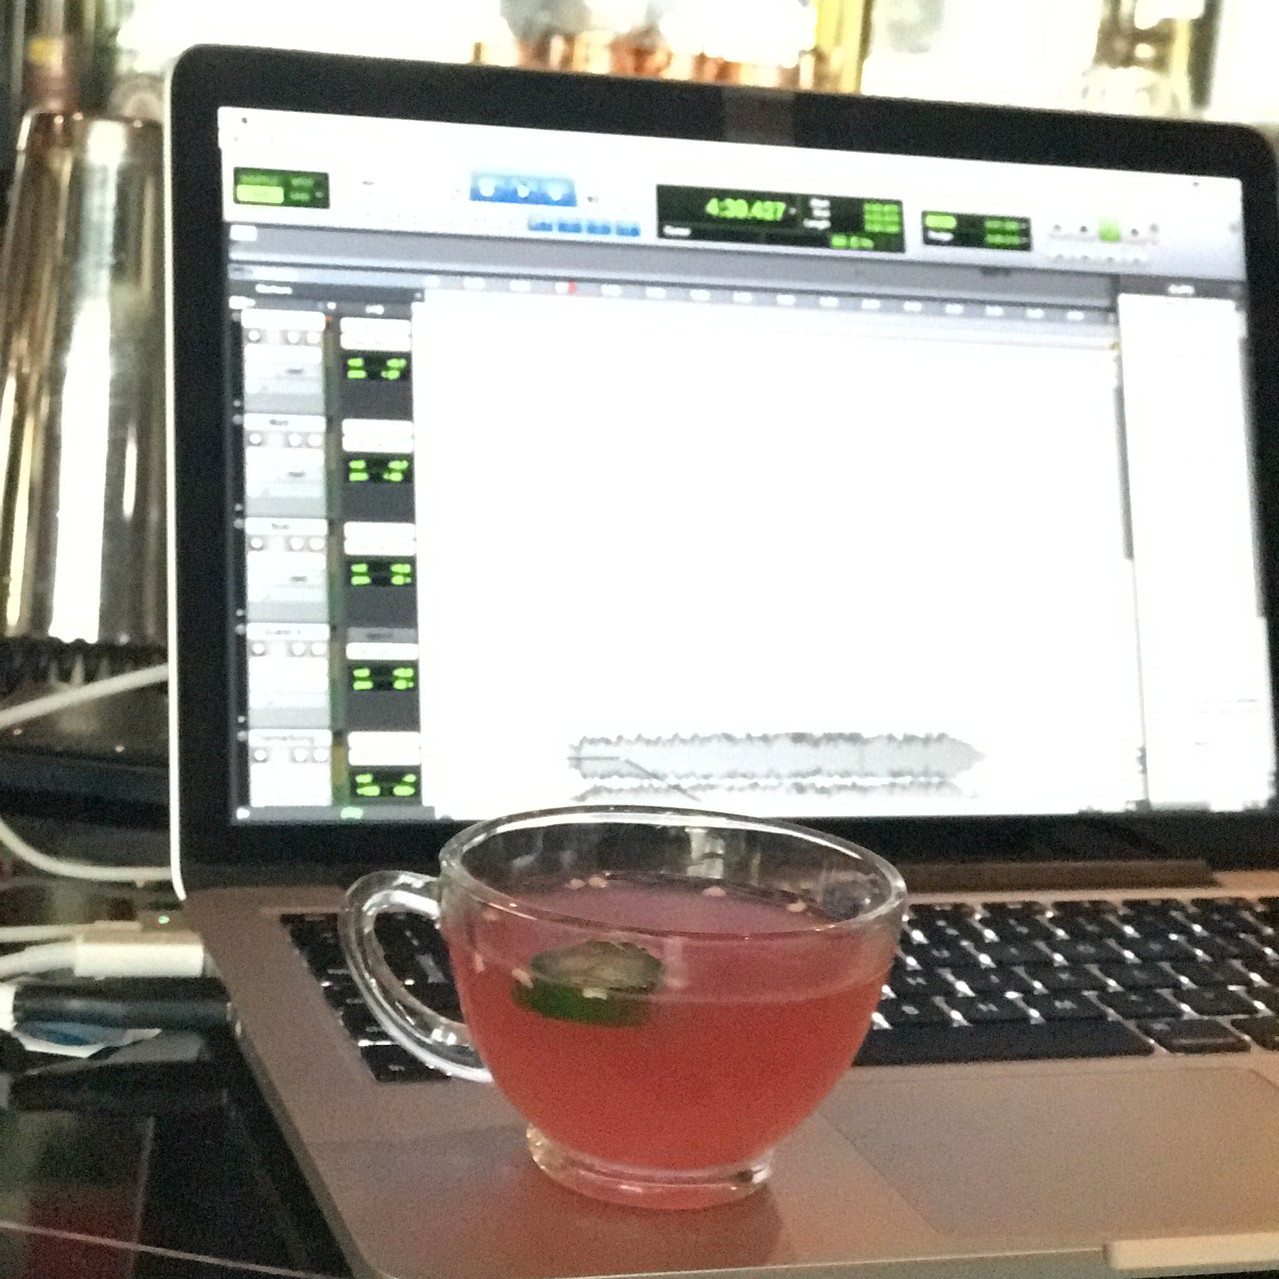 Punch and Protools